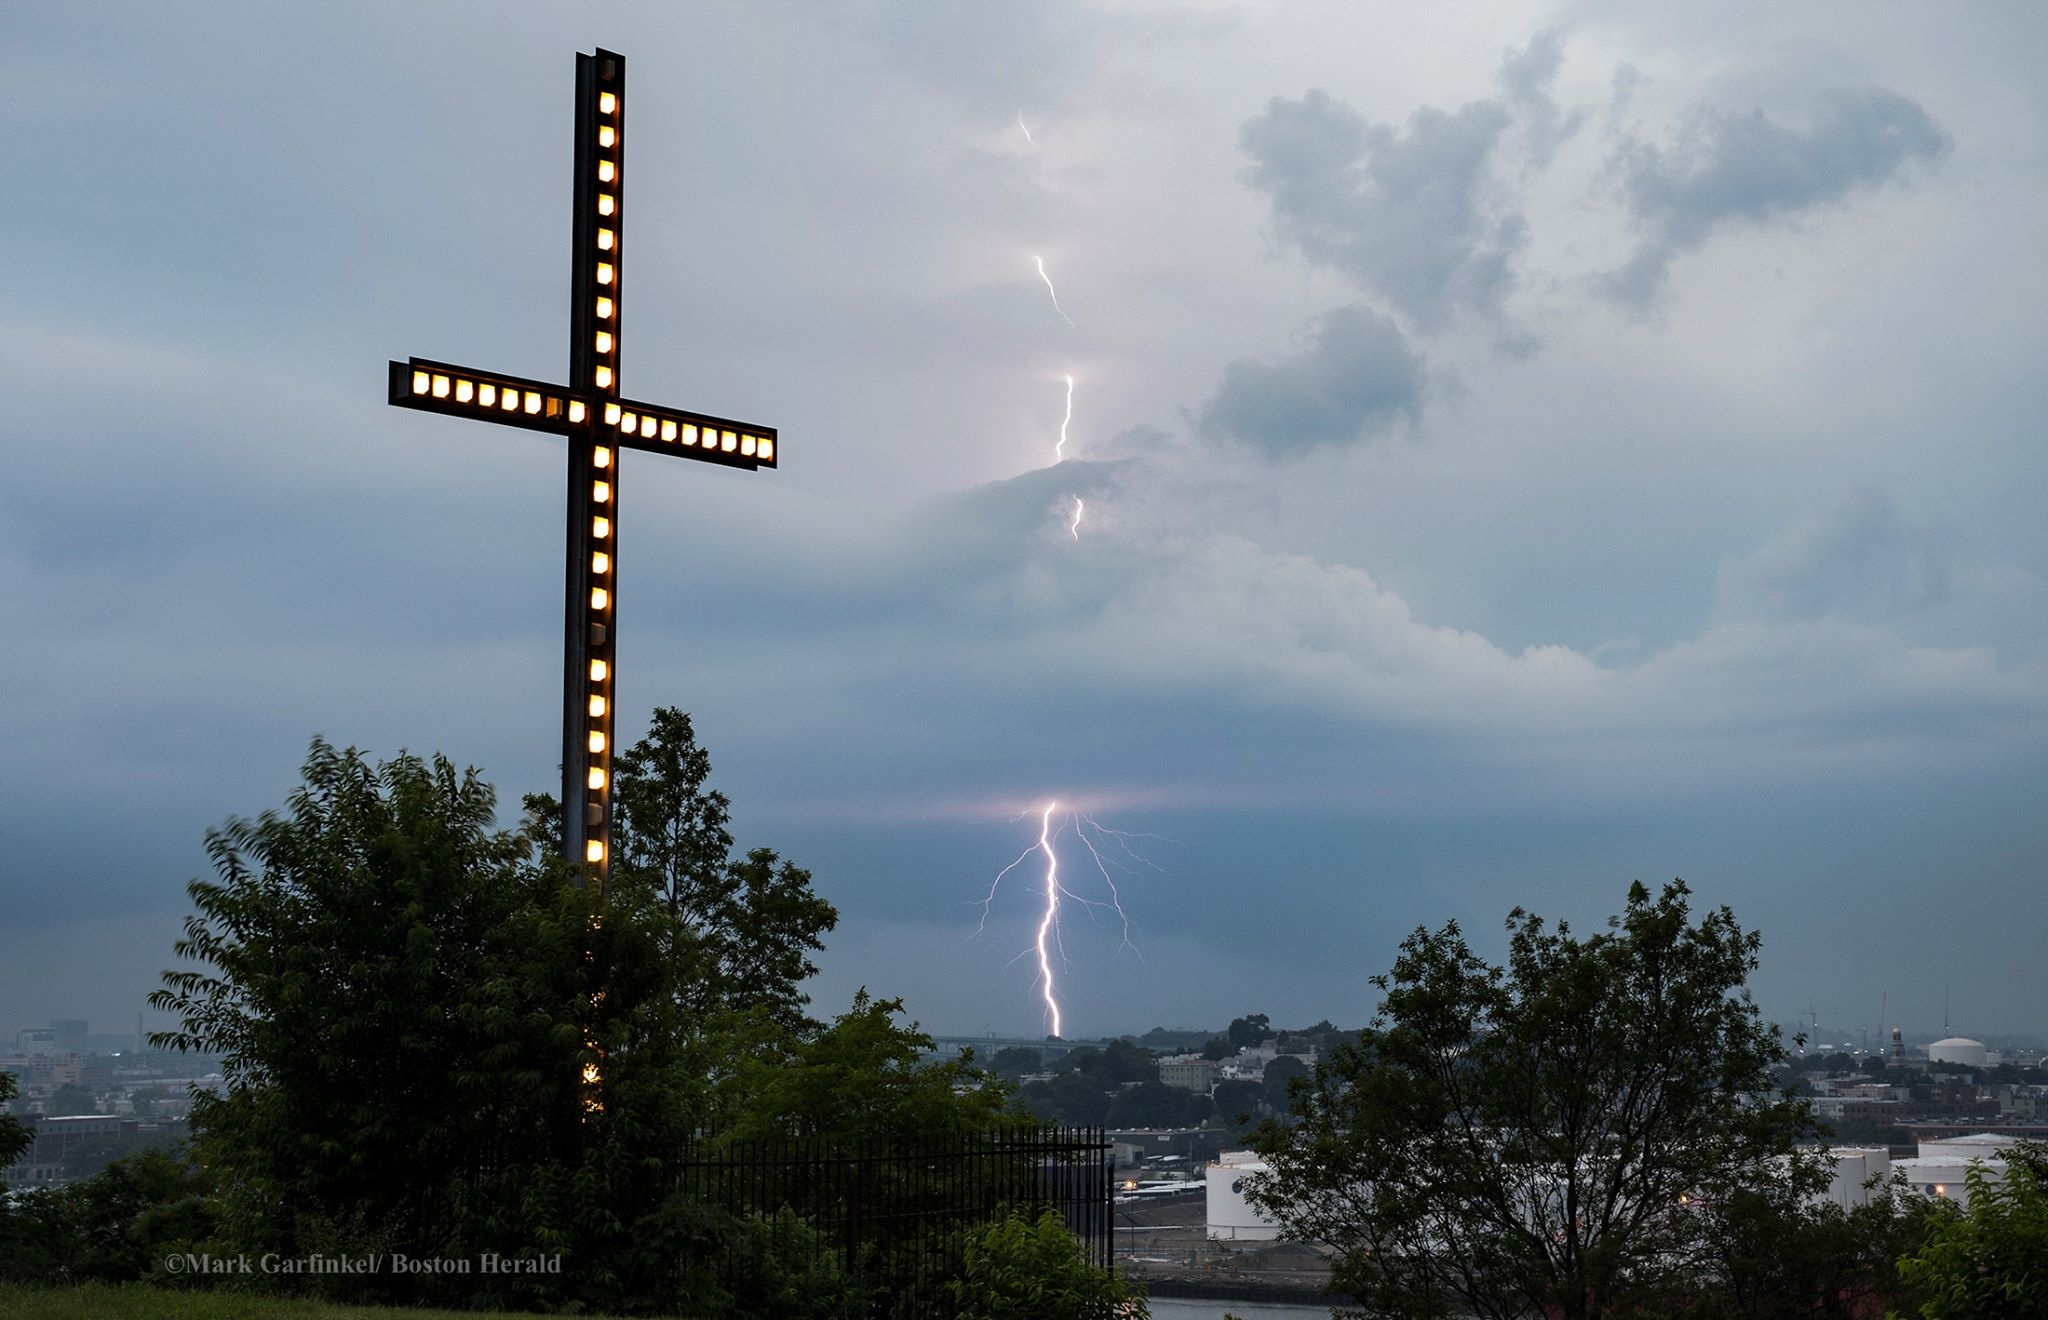 What happened under the cross?